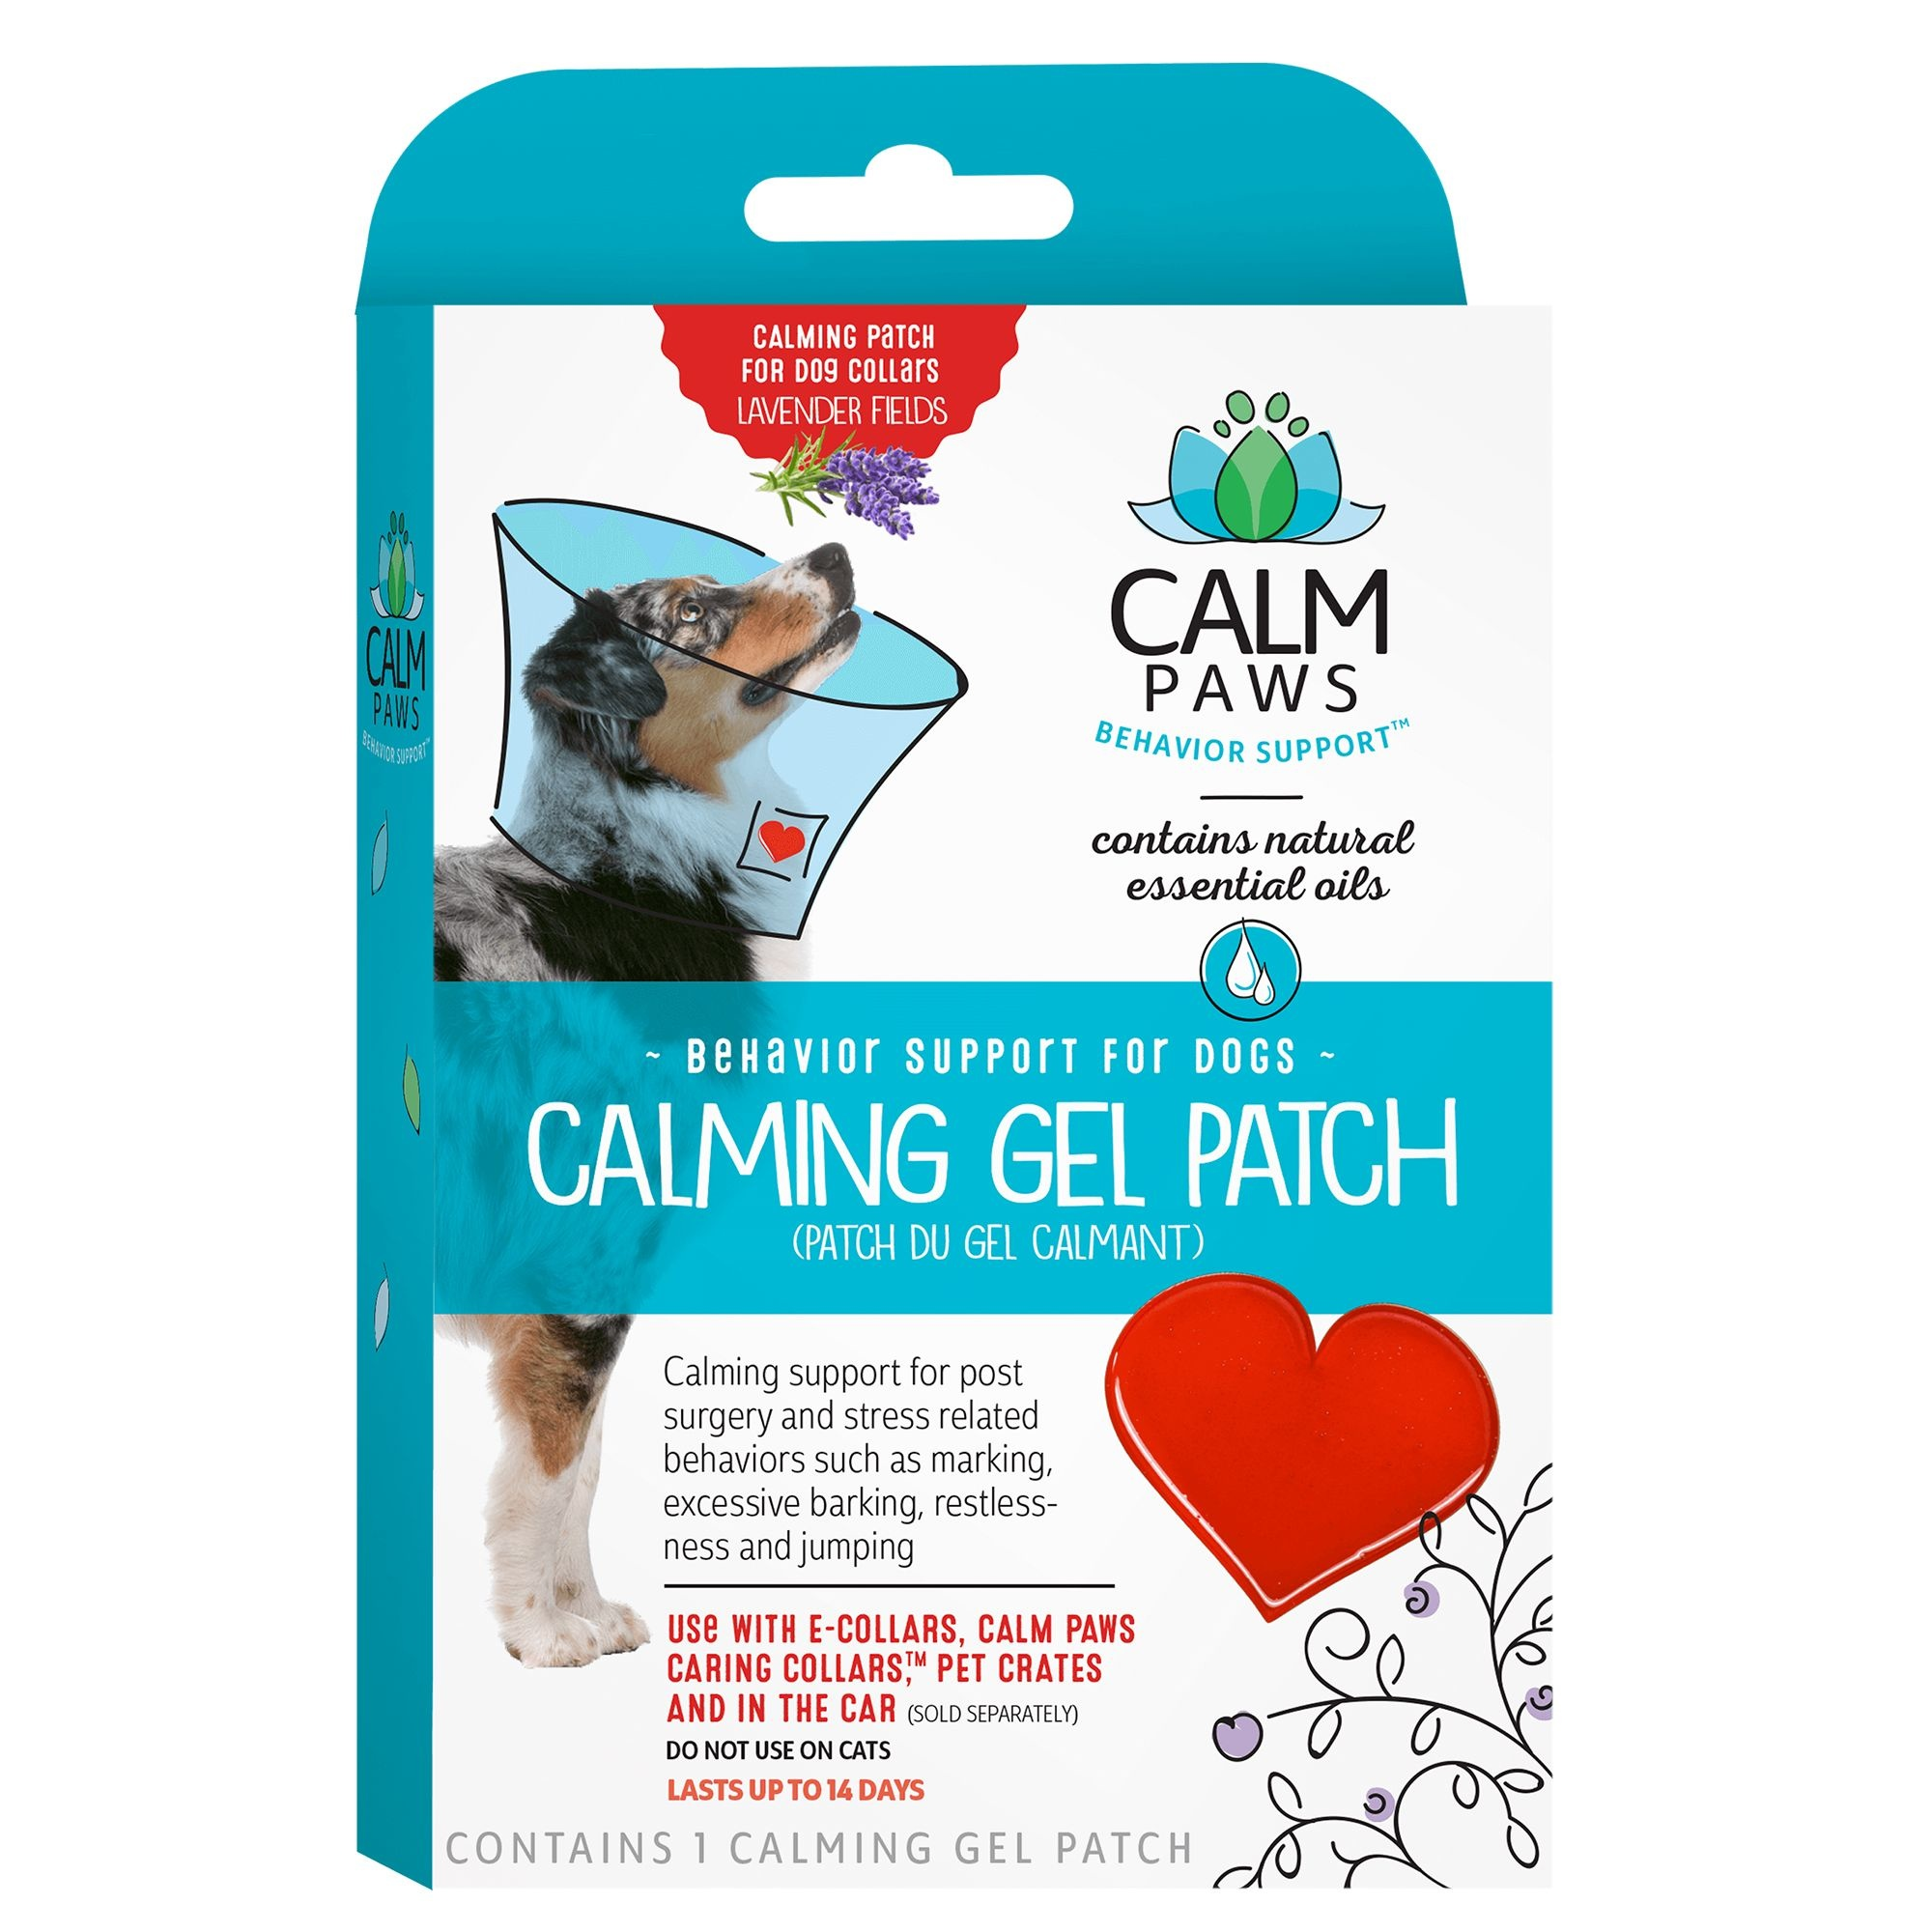 21st Centry Animal Health Care Calm Paws Behavior Support Calming Gel Patch for Dogs